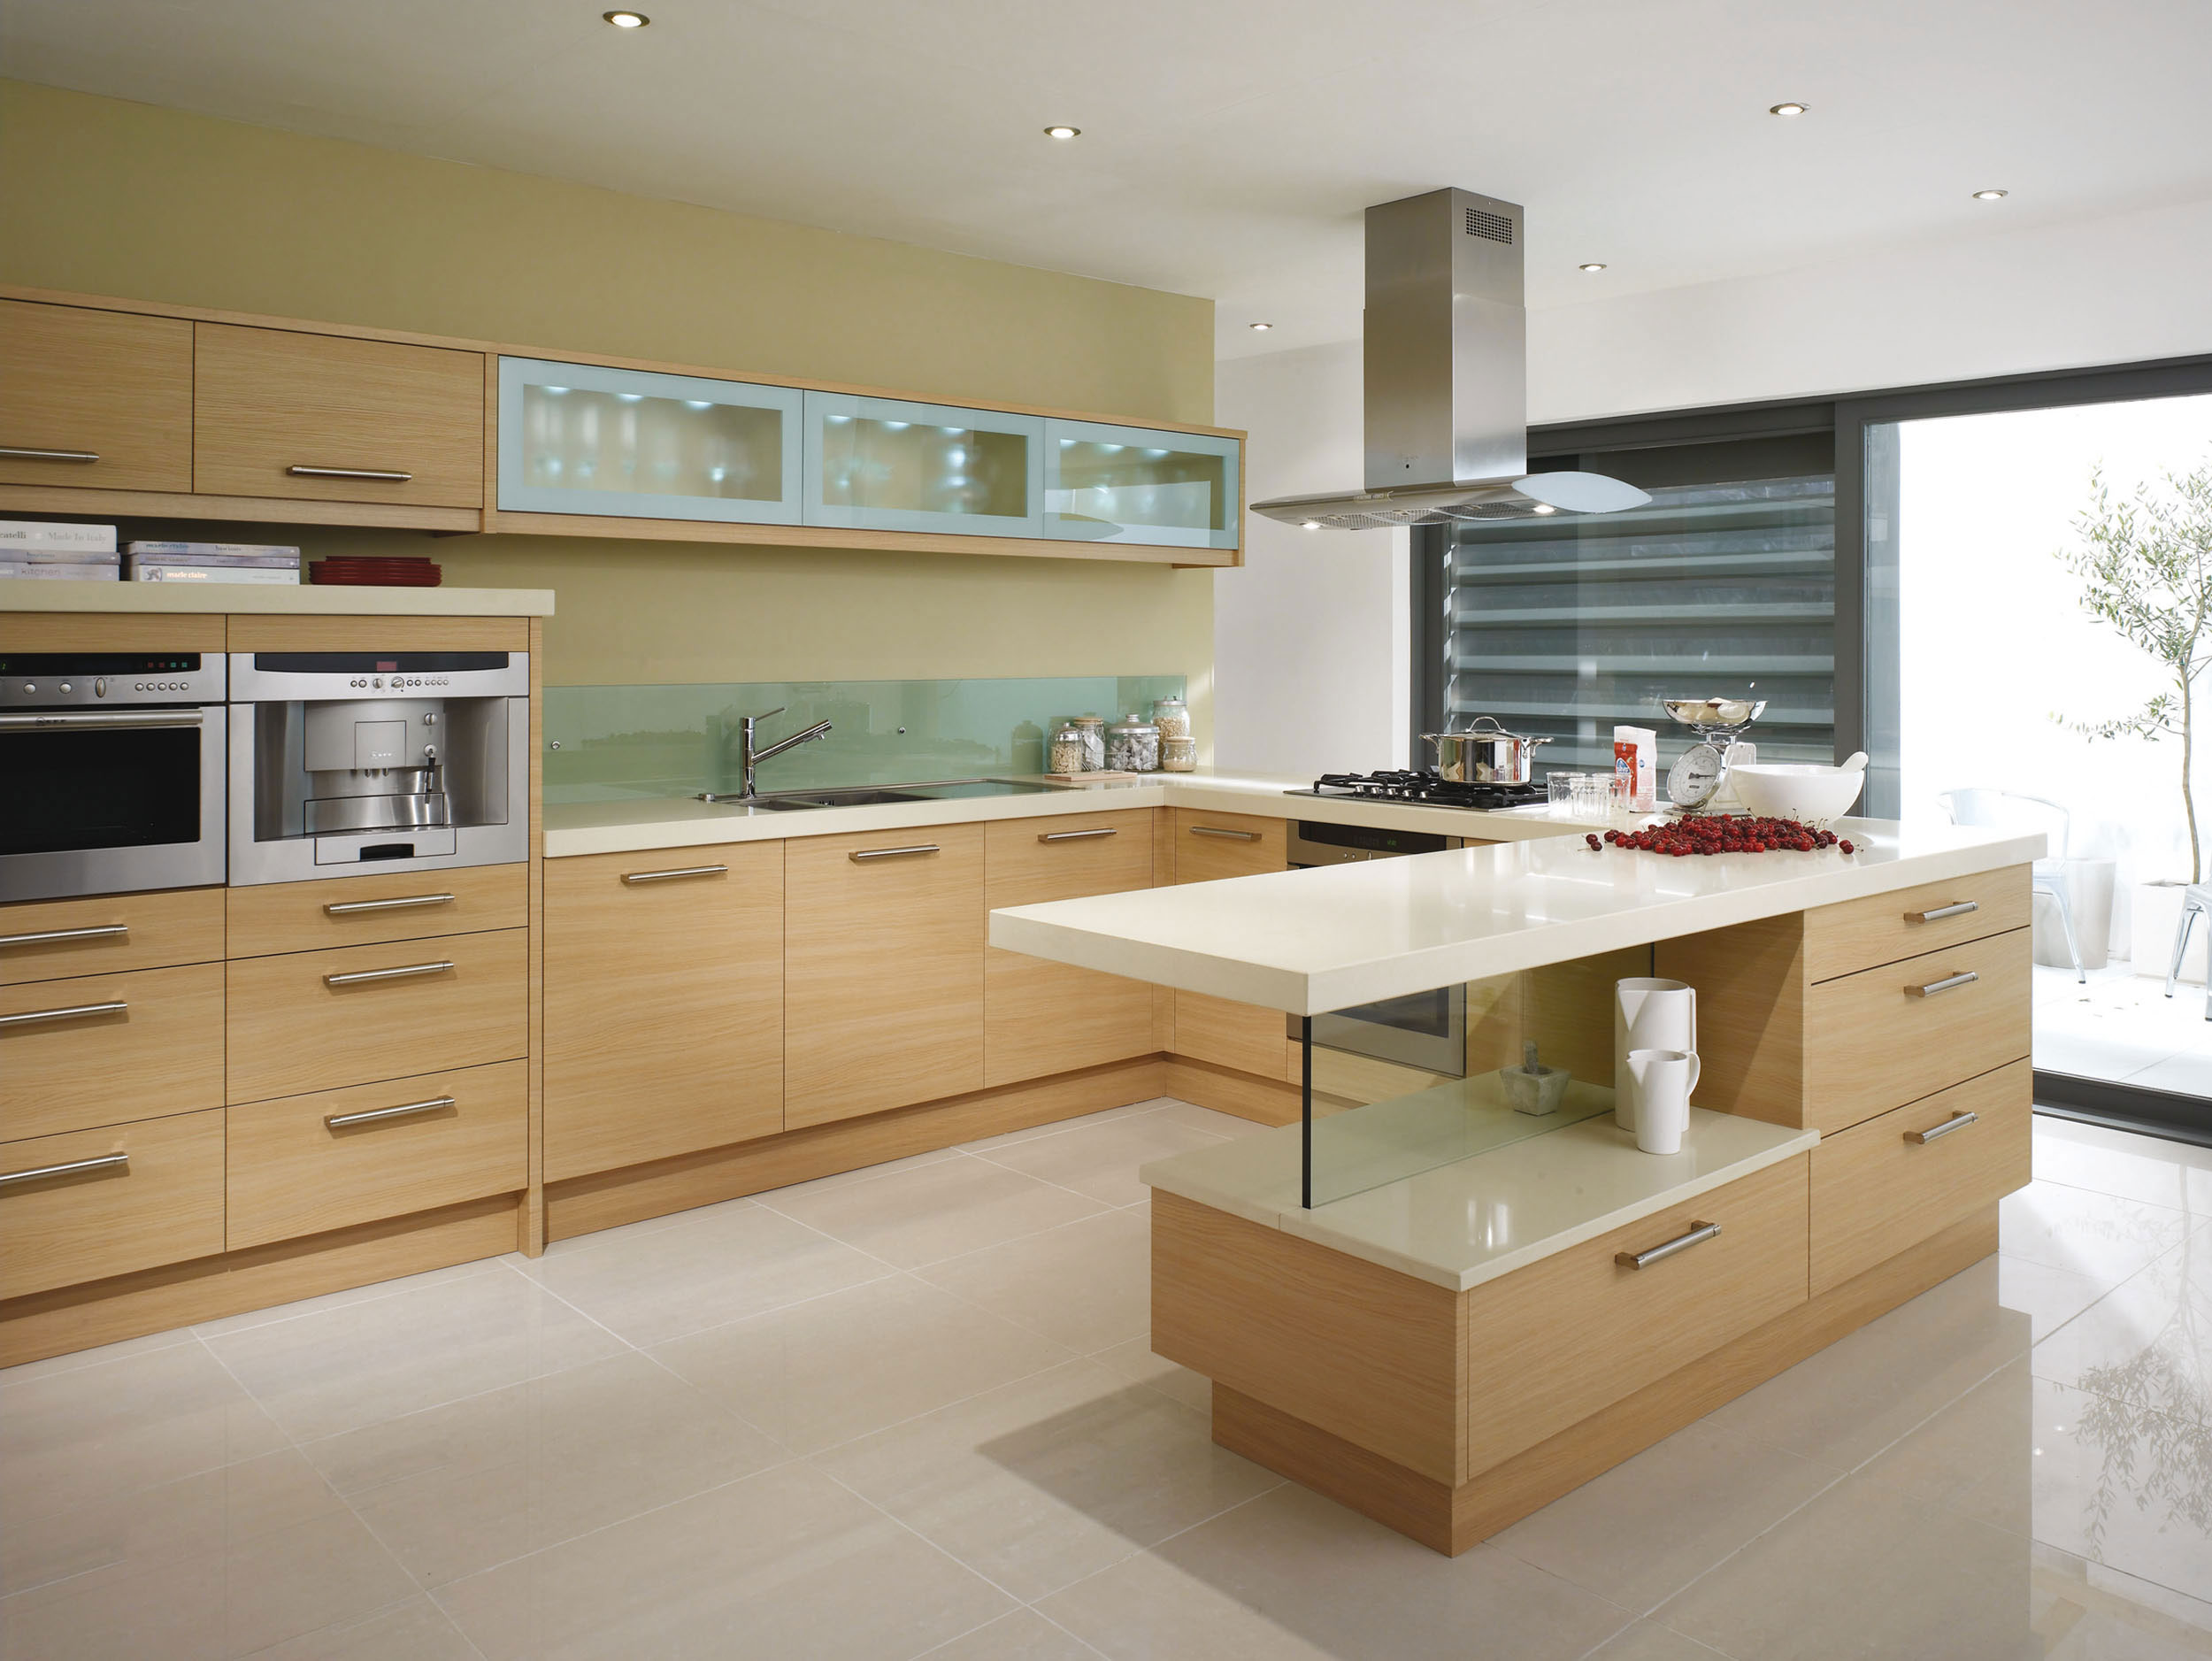 Fenton oak from eaton kitchen designs wolverhampton for Kitchen designs and layout